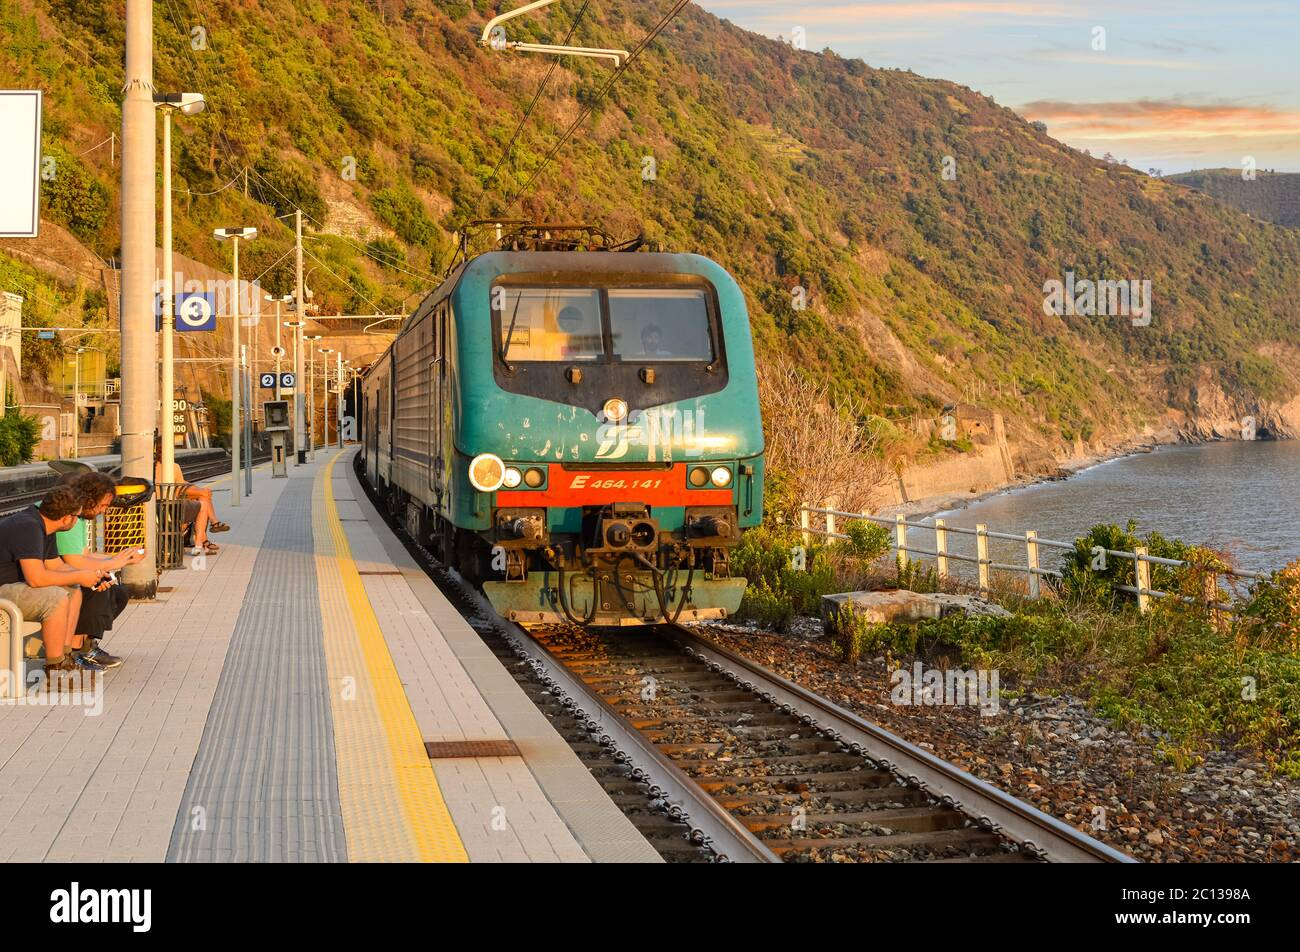 A train travels into the Monterosso al Mare train station on the Cinque Terre coast of Italy as travelers sit and enjoy a warm day in early autumn Stock Photo